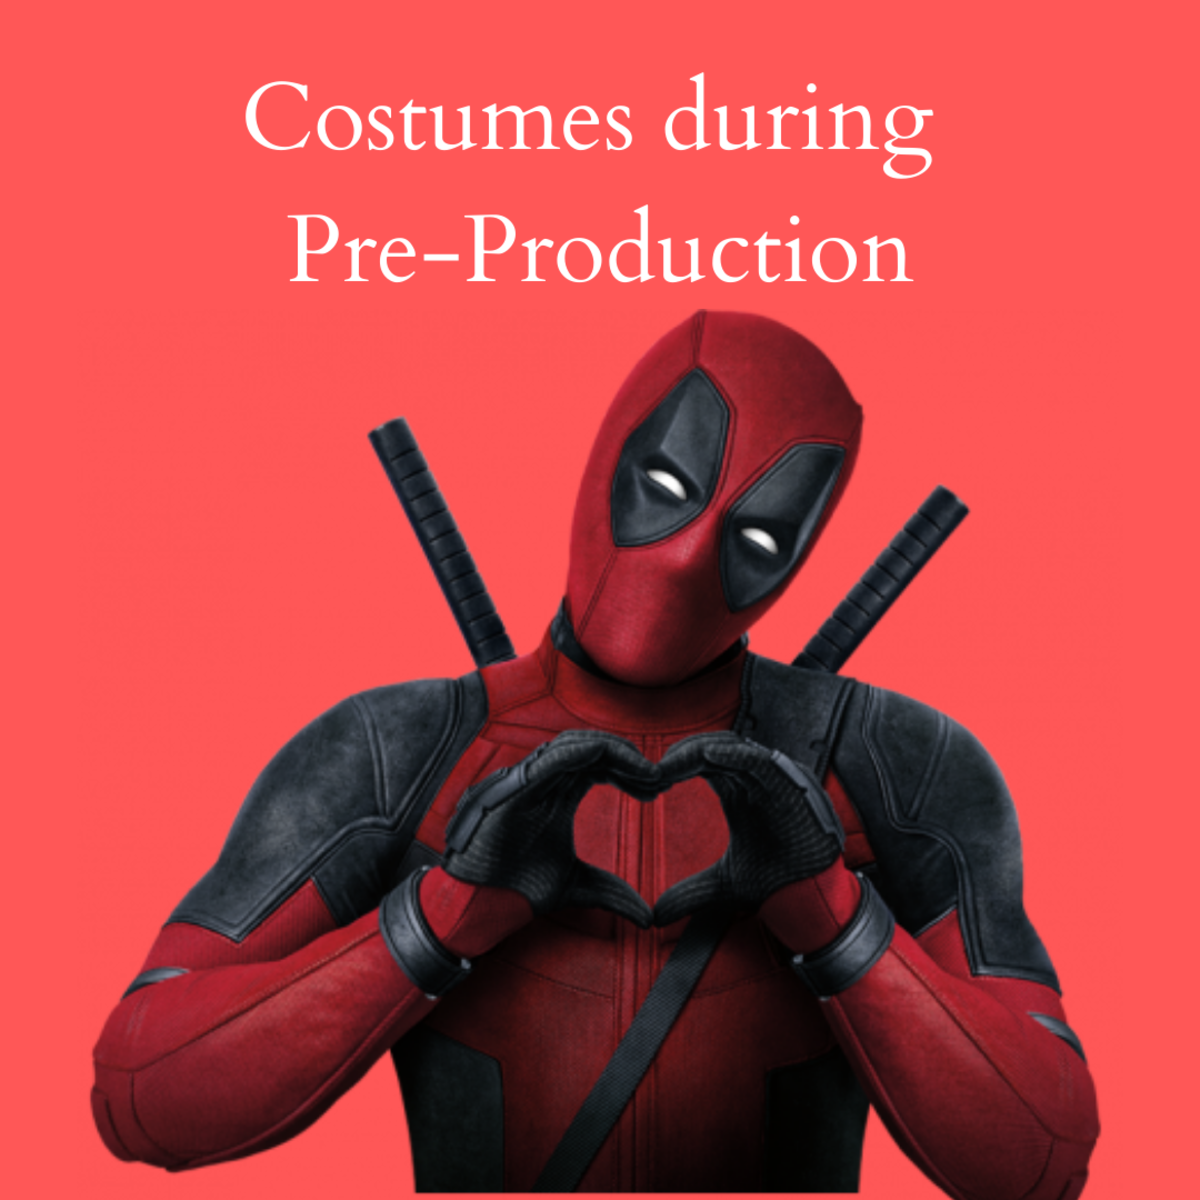 A picture of Ryan Reynolds in the Deadpool Costume